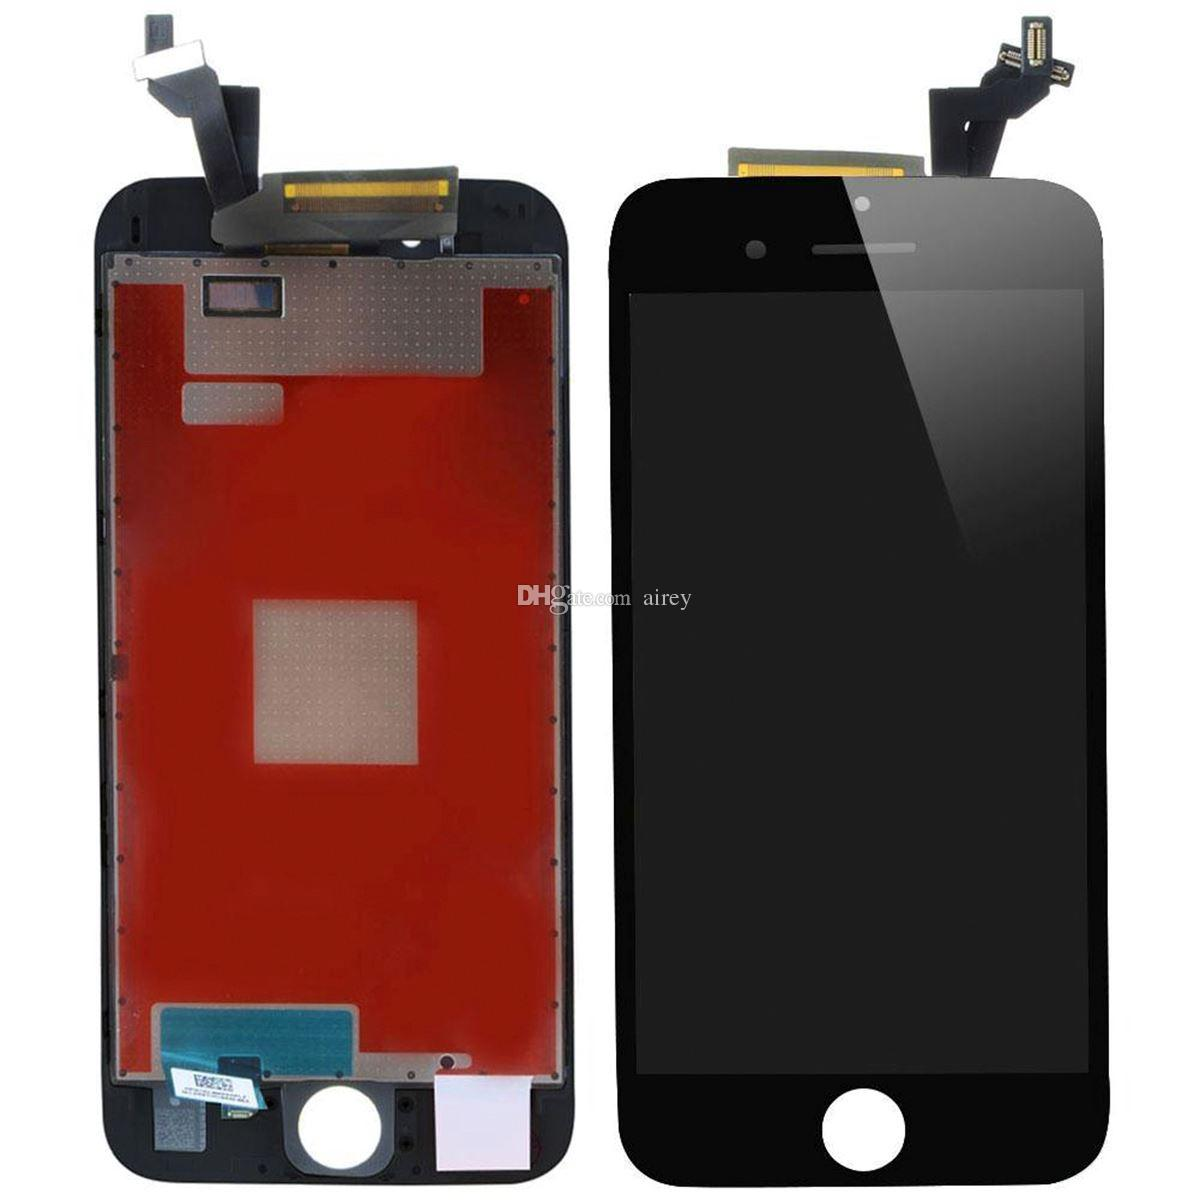 wholesale dealer 81776 e2e95 DHL Free AAA Quality iPhone 6S+ LCD Digitizer Panel Touch Screen Display  Assembly with Frame Repair Replacement for Apple iPhone 6S Plus